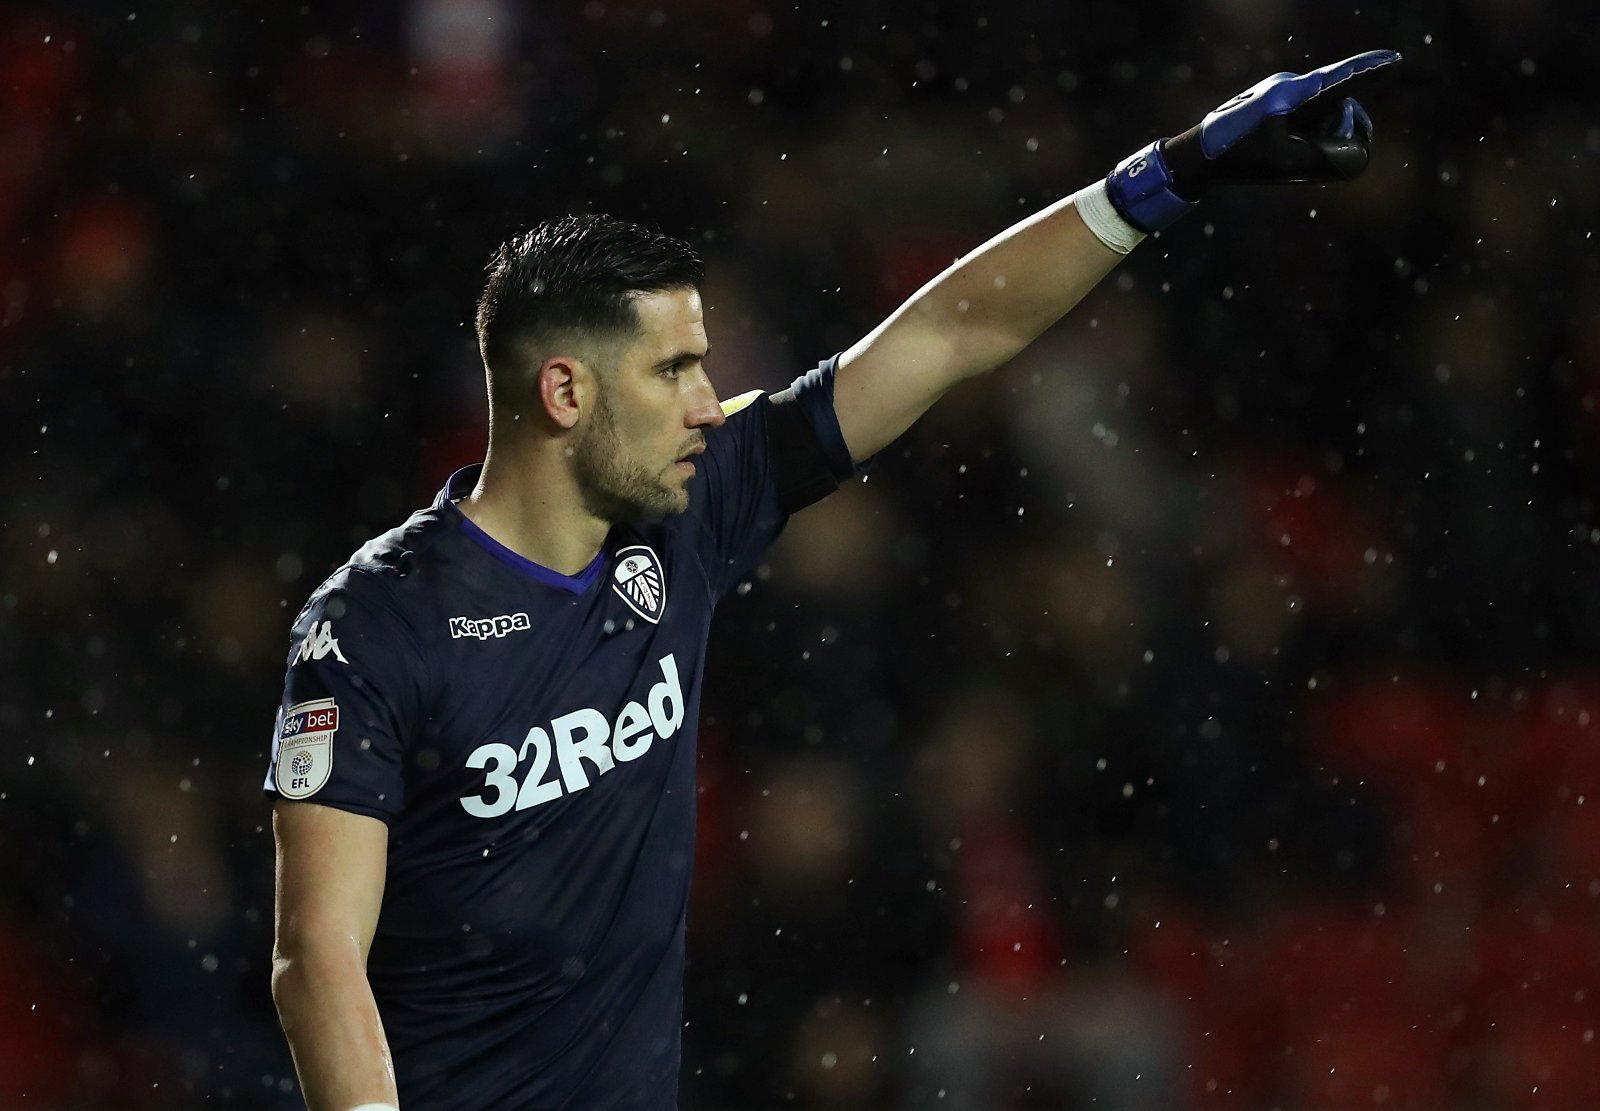 Leeds fans on Twitter loved hearing Kiko Casilla's verdict on promotion